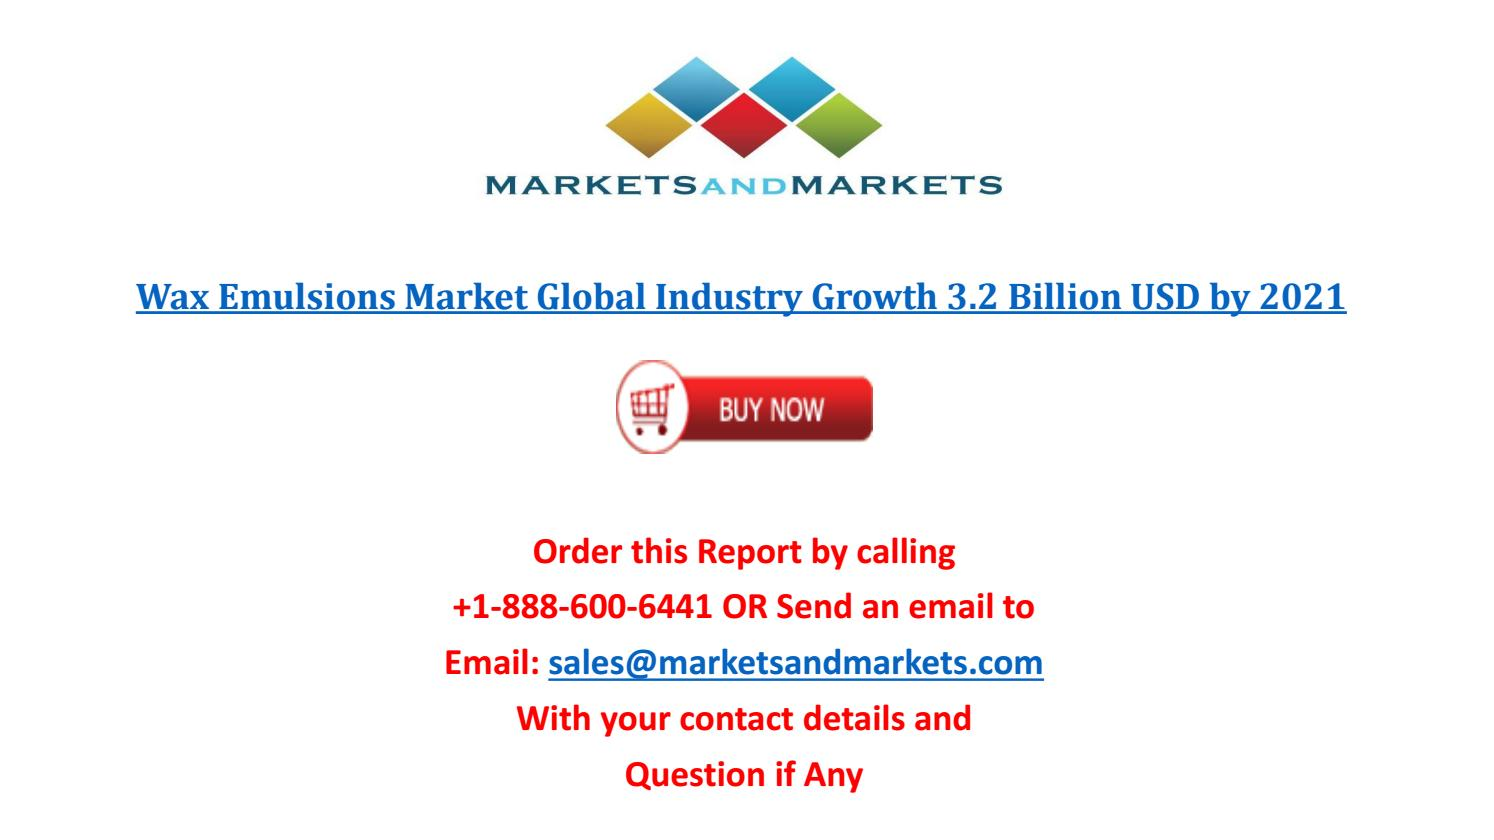 Wax Emulsions Market worth 3 2 Billion USD by 2021 by gauri